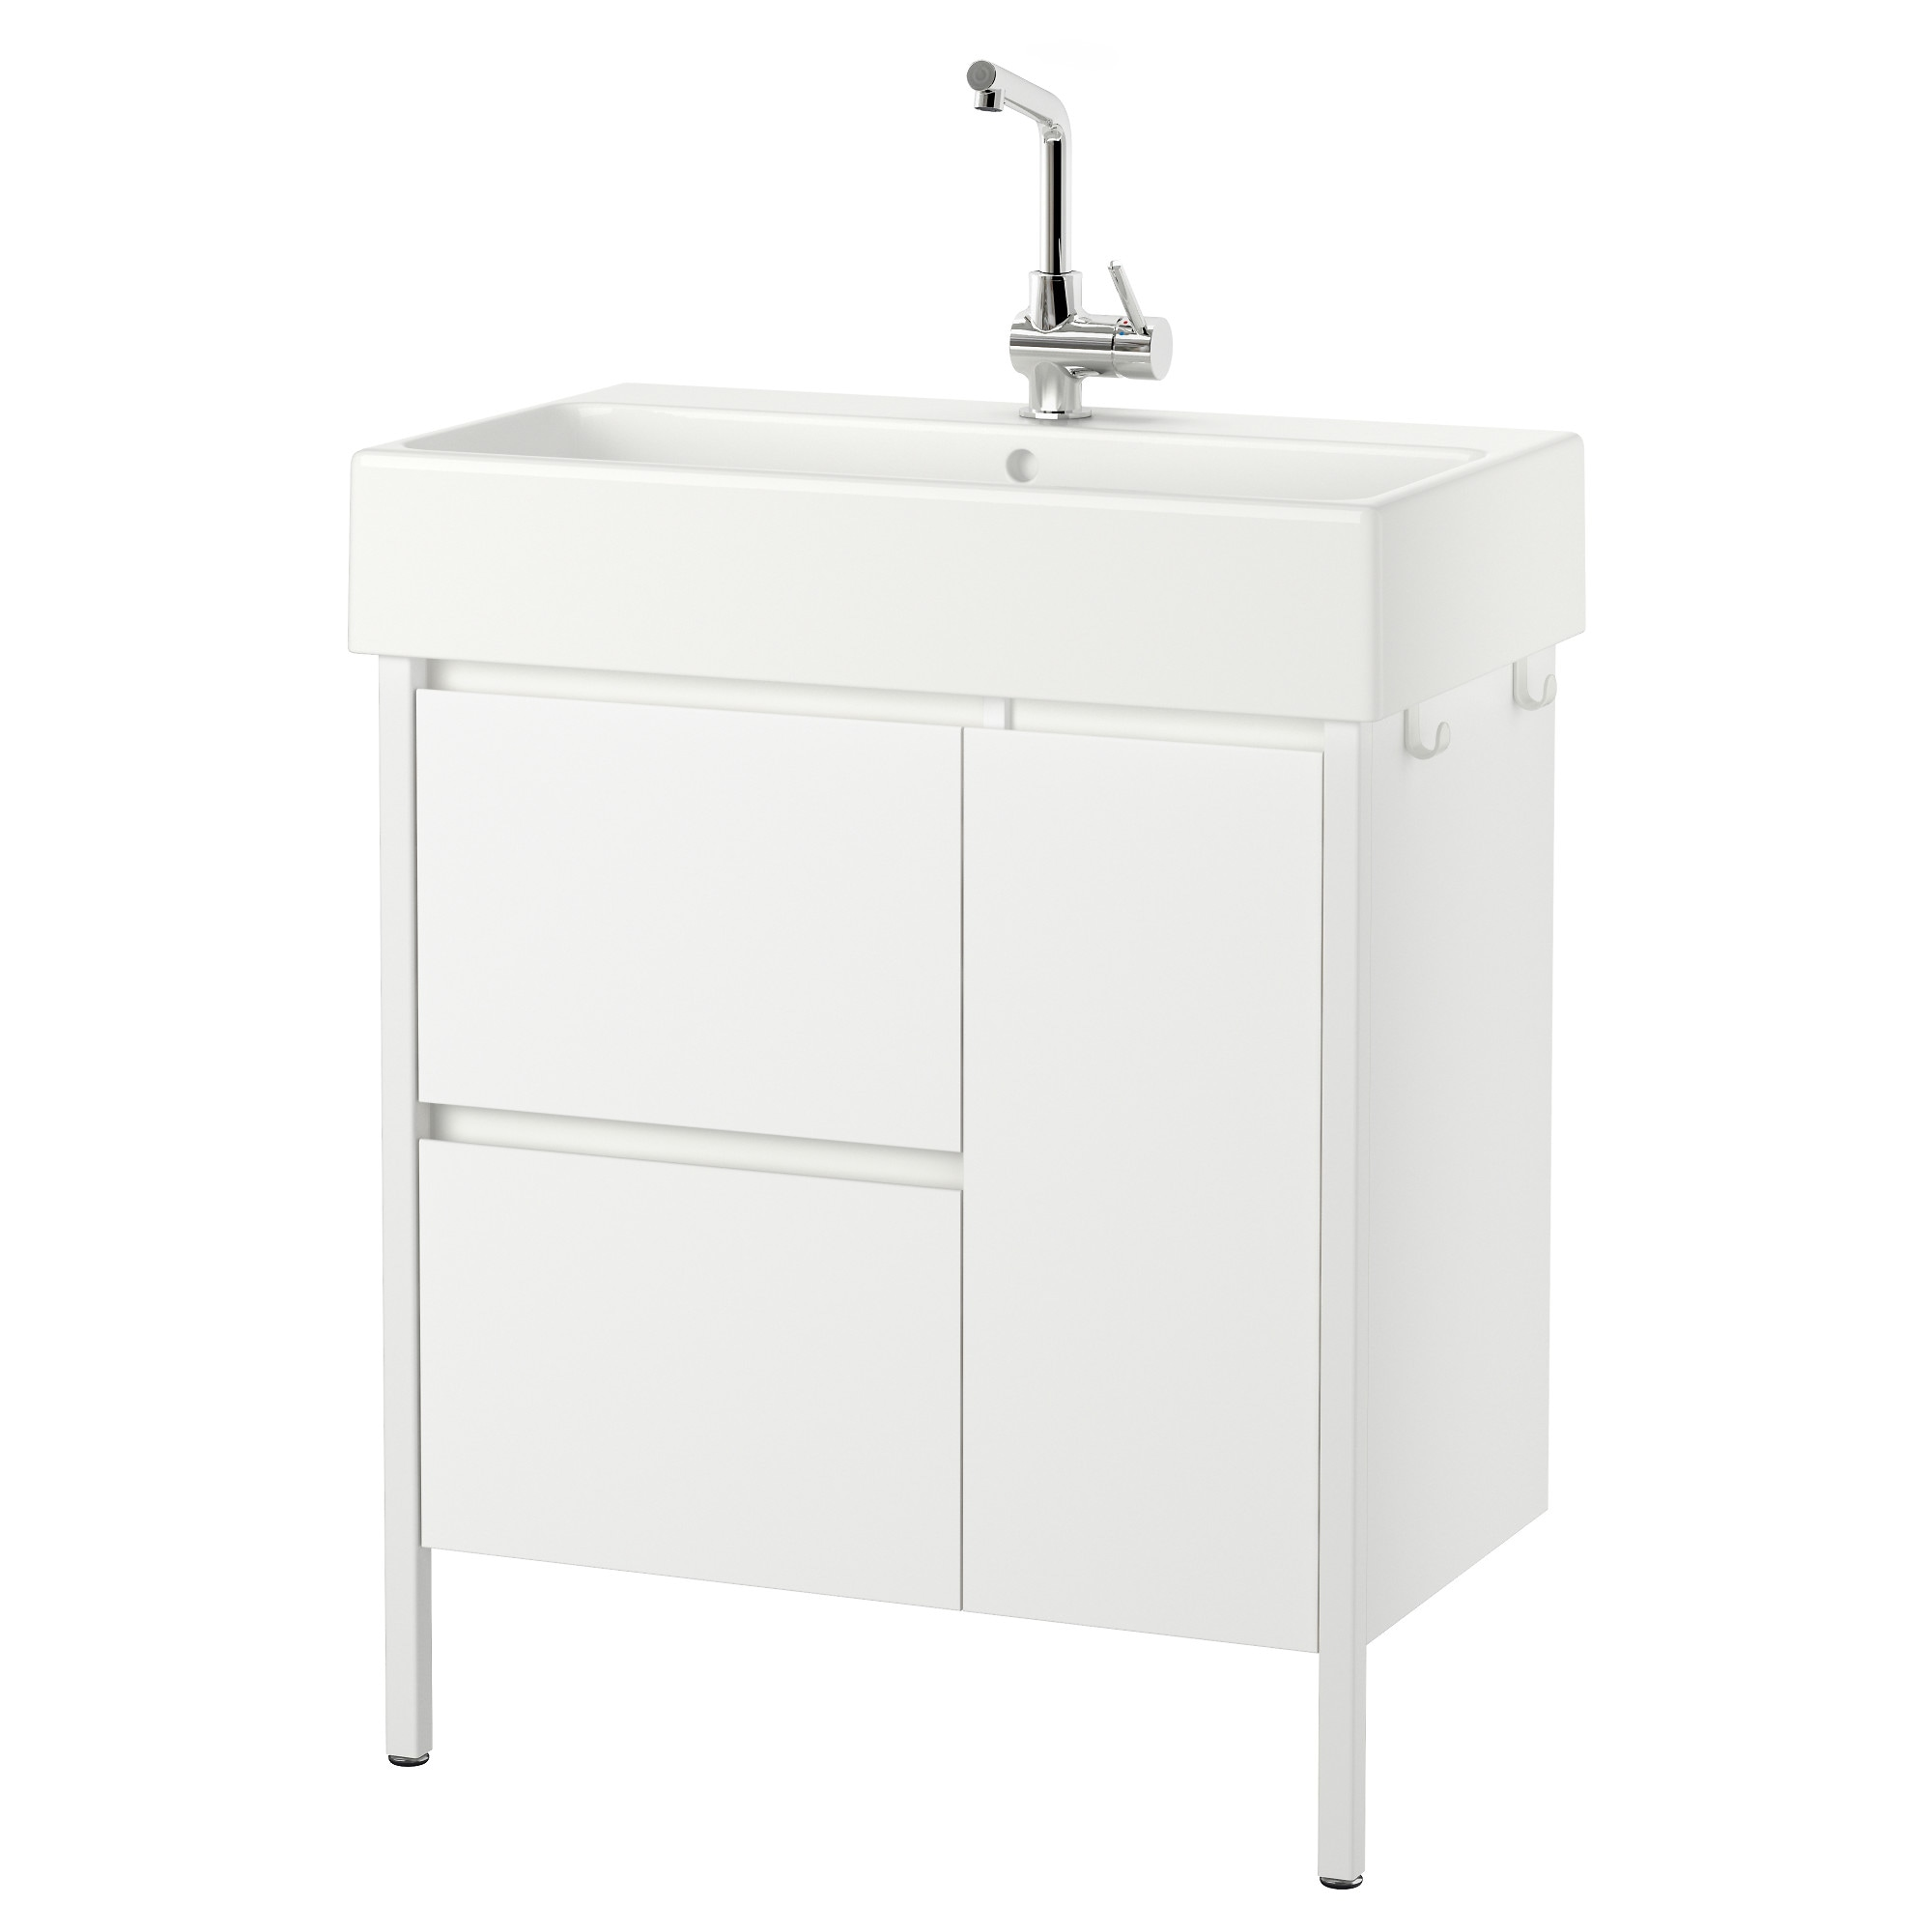 YDDINGEN Sink Cabinet With 2 Drawers/1 Door   IKEA